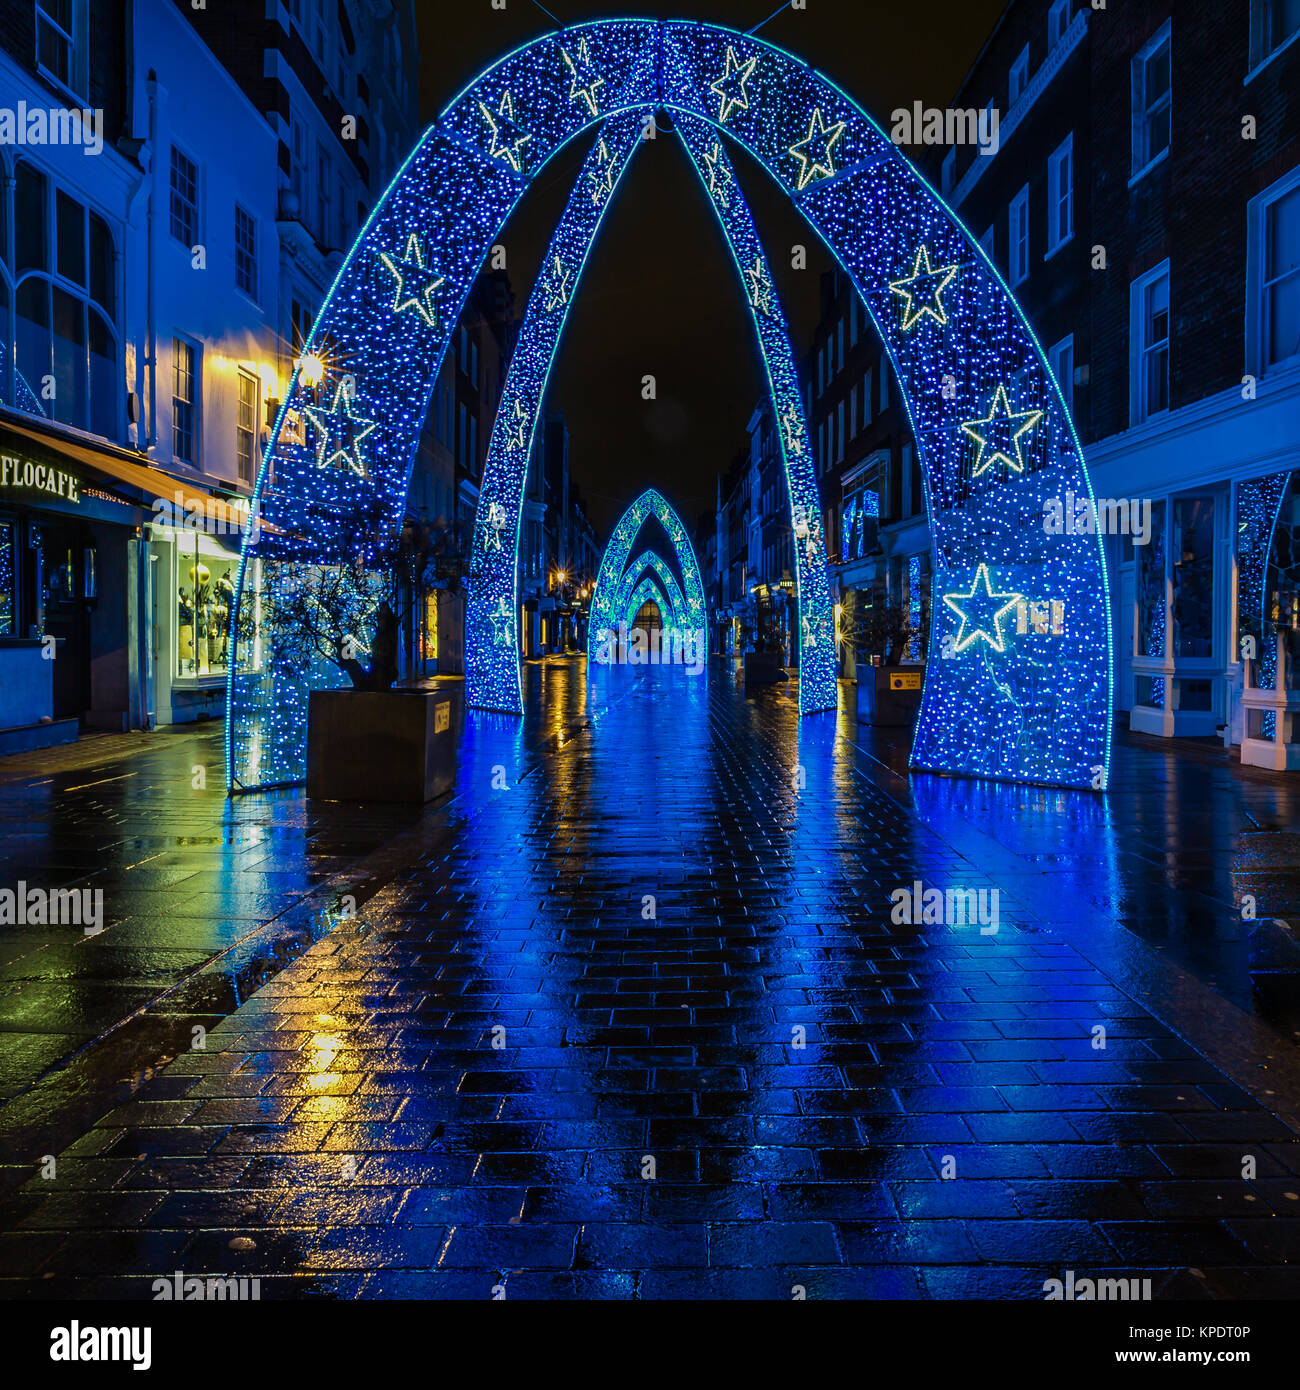 Christmas street lights and decorations in London - Stock Image